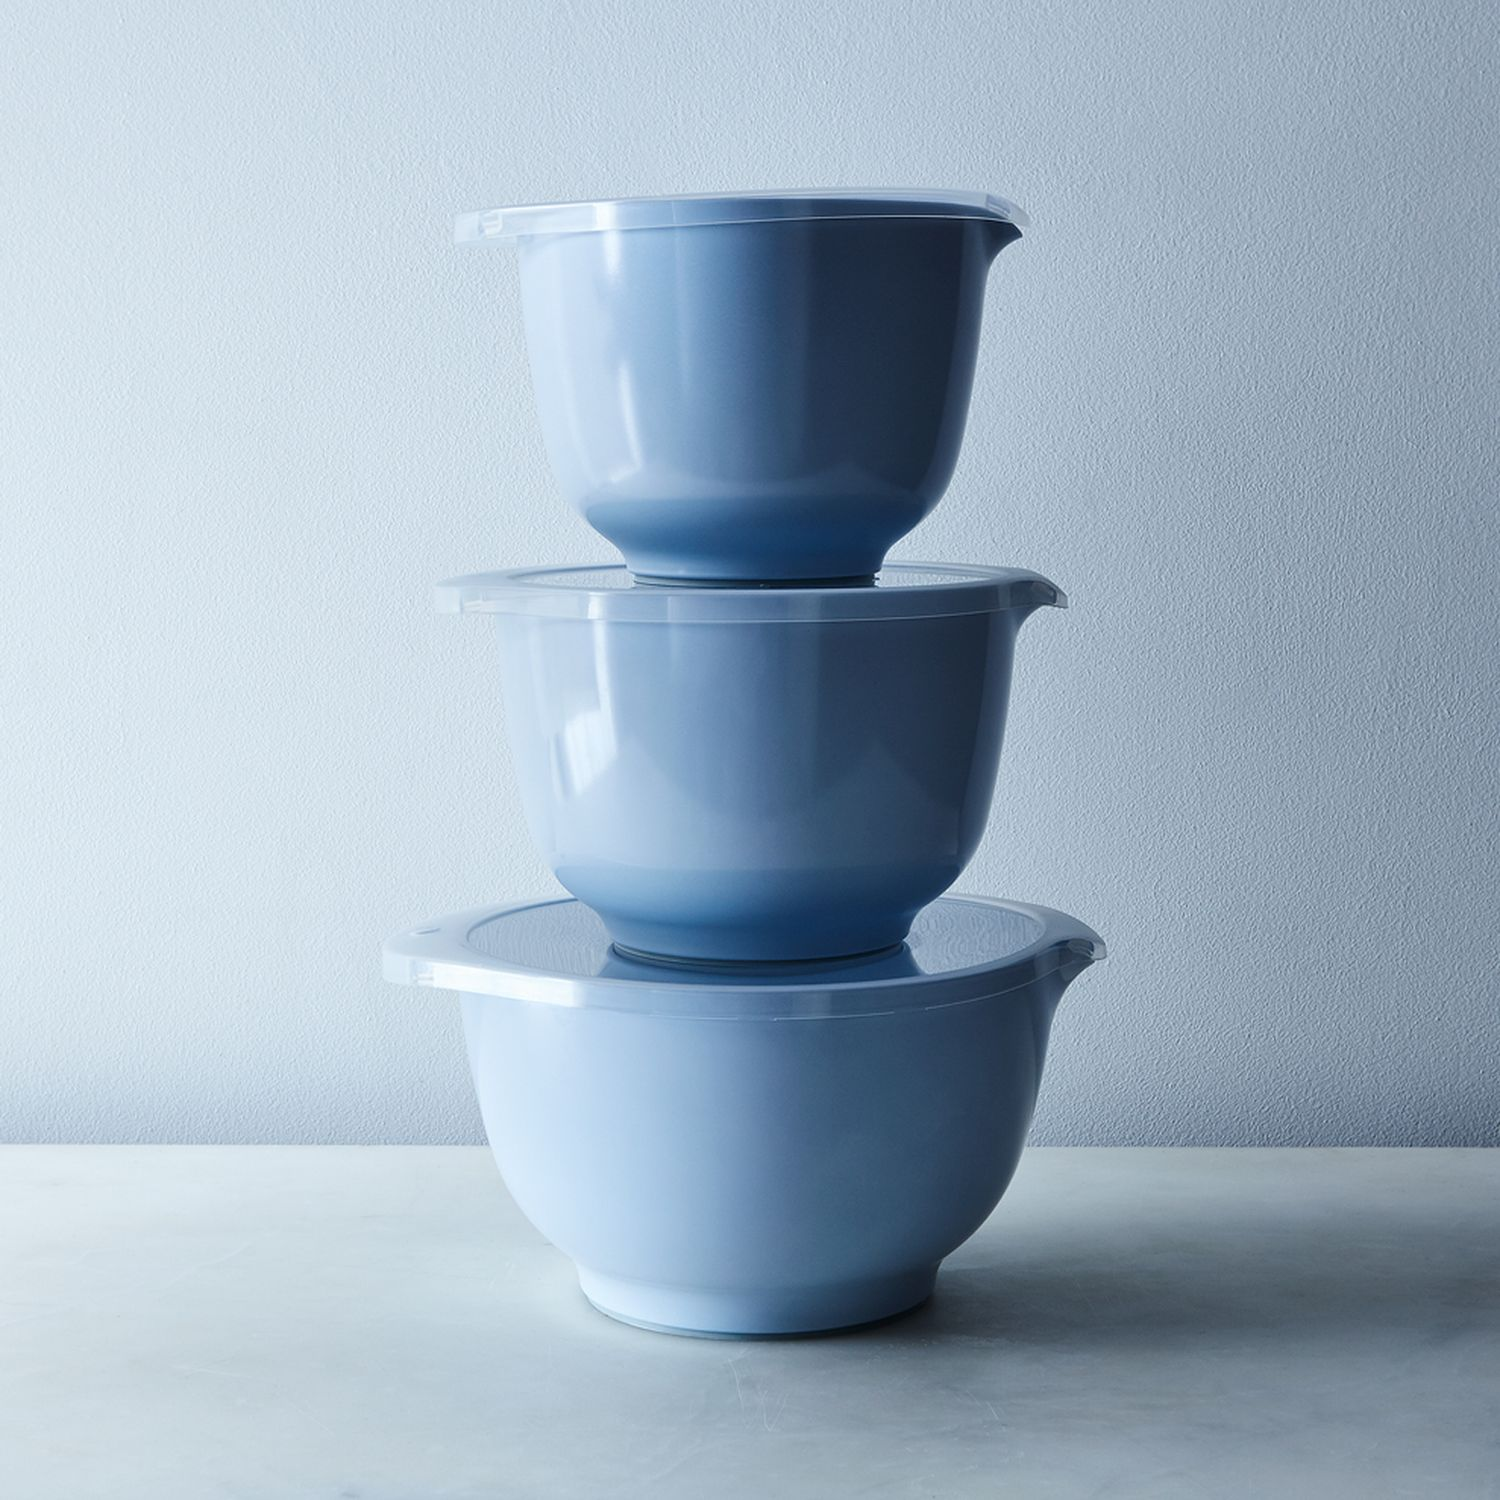 Food52 x Rosti Mepal Margrethe Nested Mixing Bowls & Specialty Lids on Food52